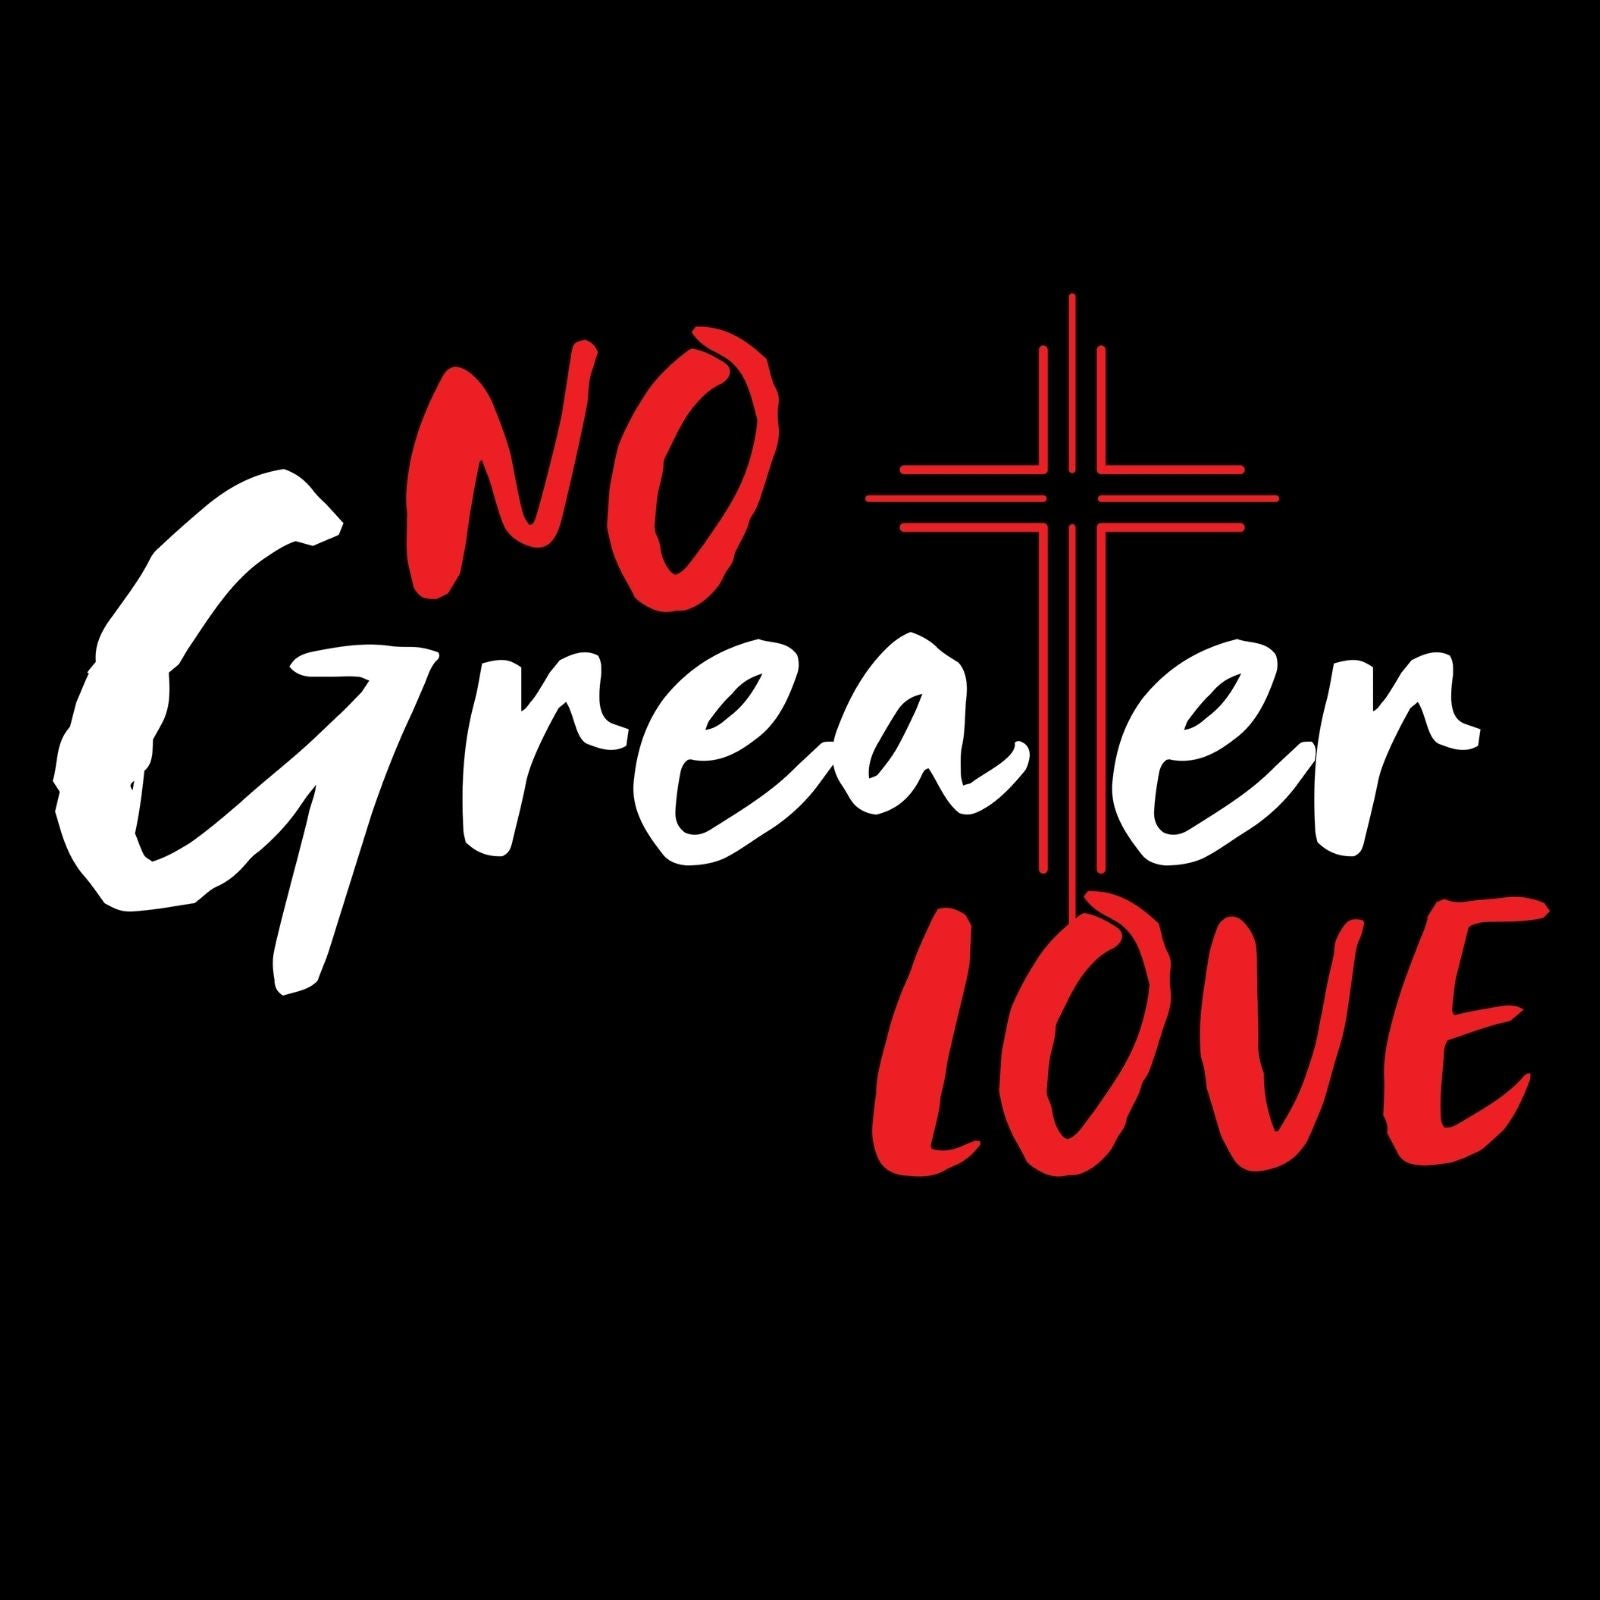 No Greater Love - Bastard Graphics